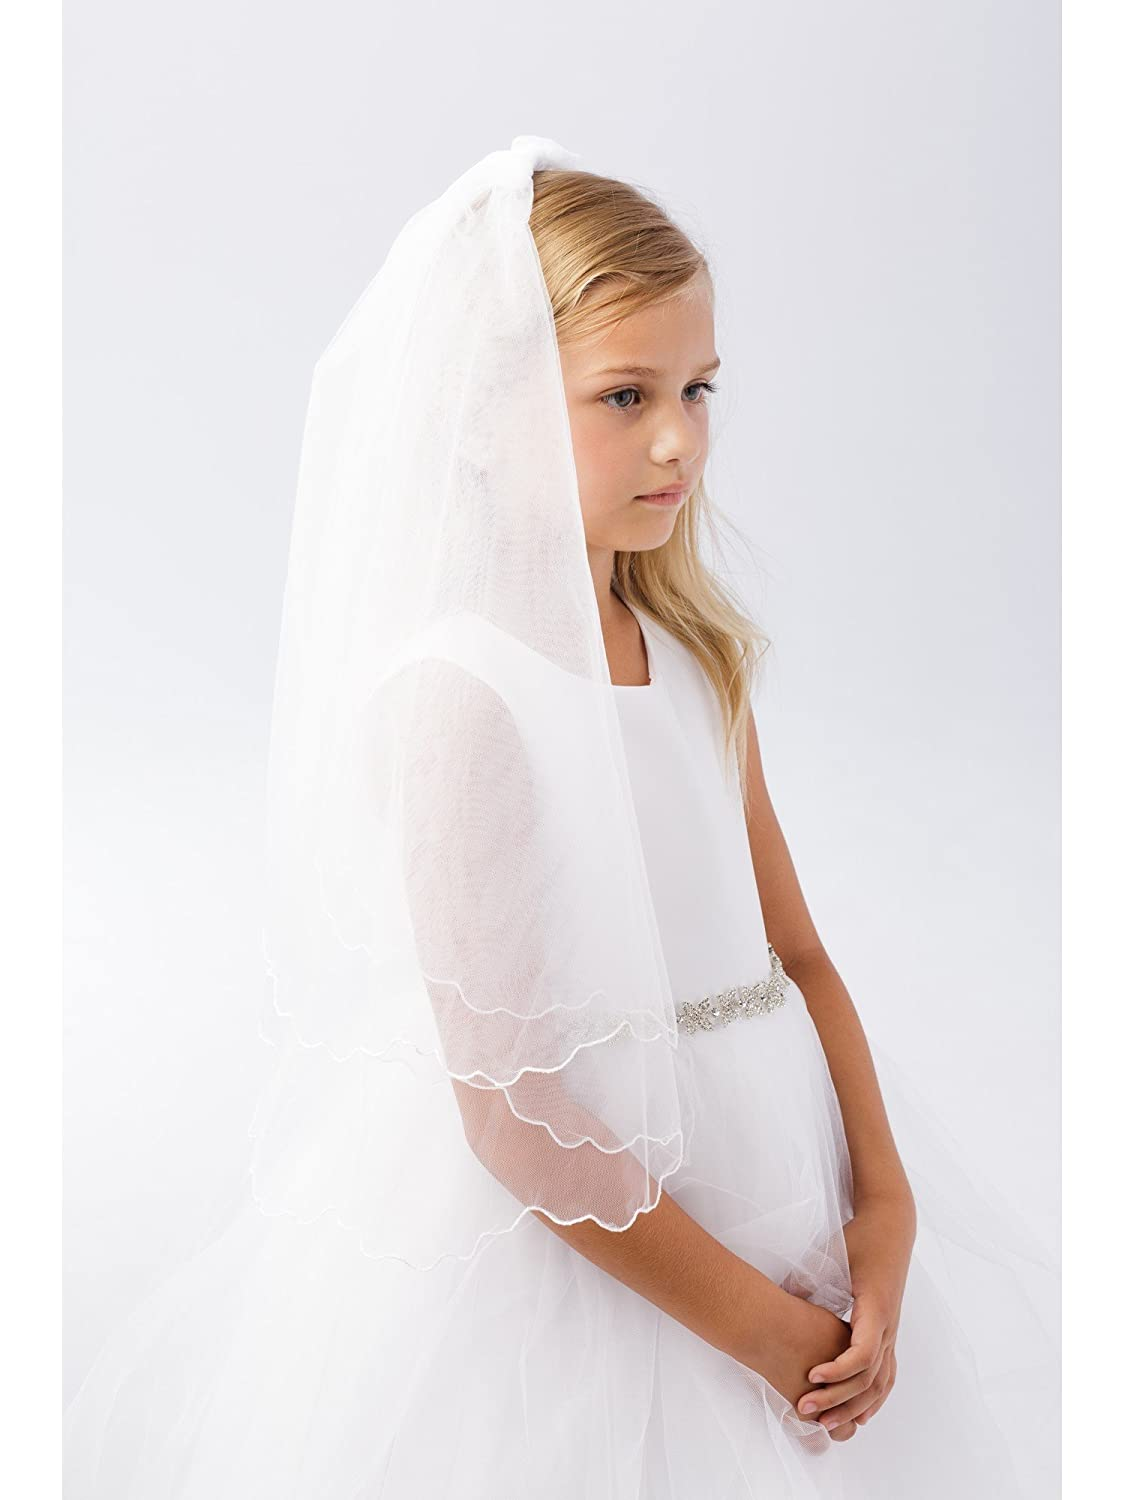 Girls White Scalloped Chord Edging Double Layer Communion Flower Girl Veil Tip Top Kids